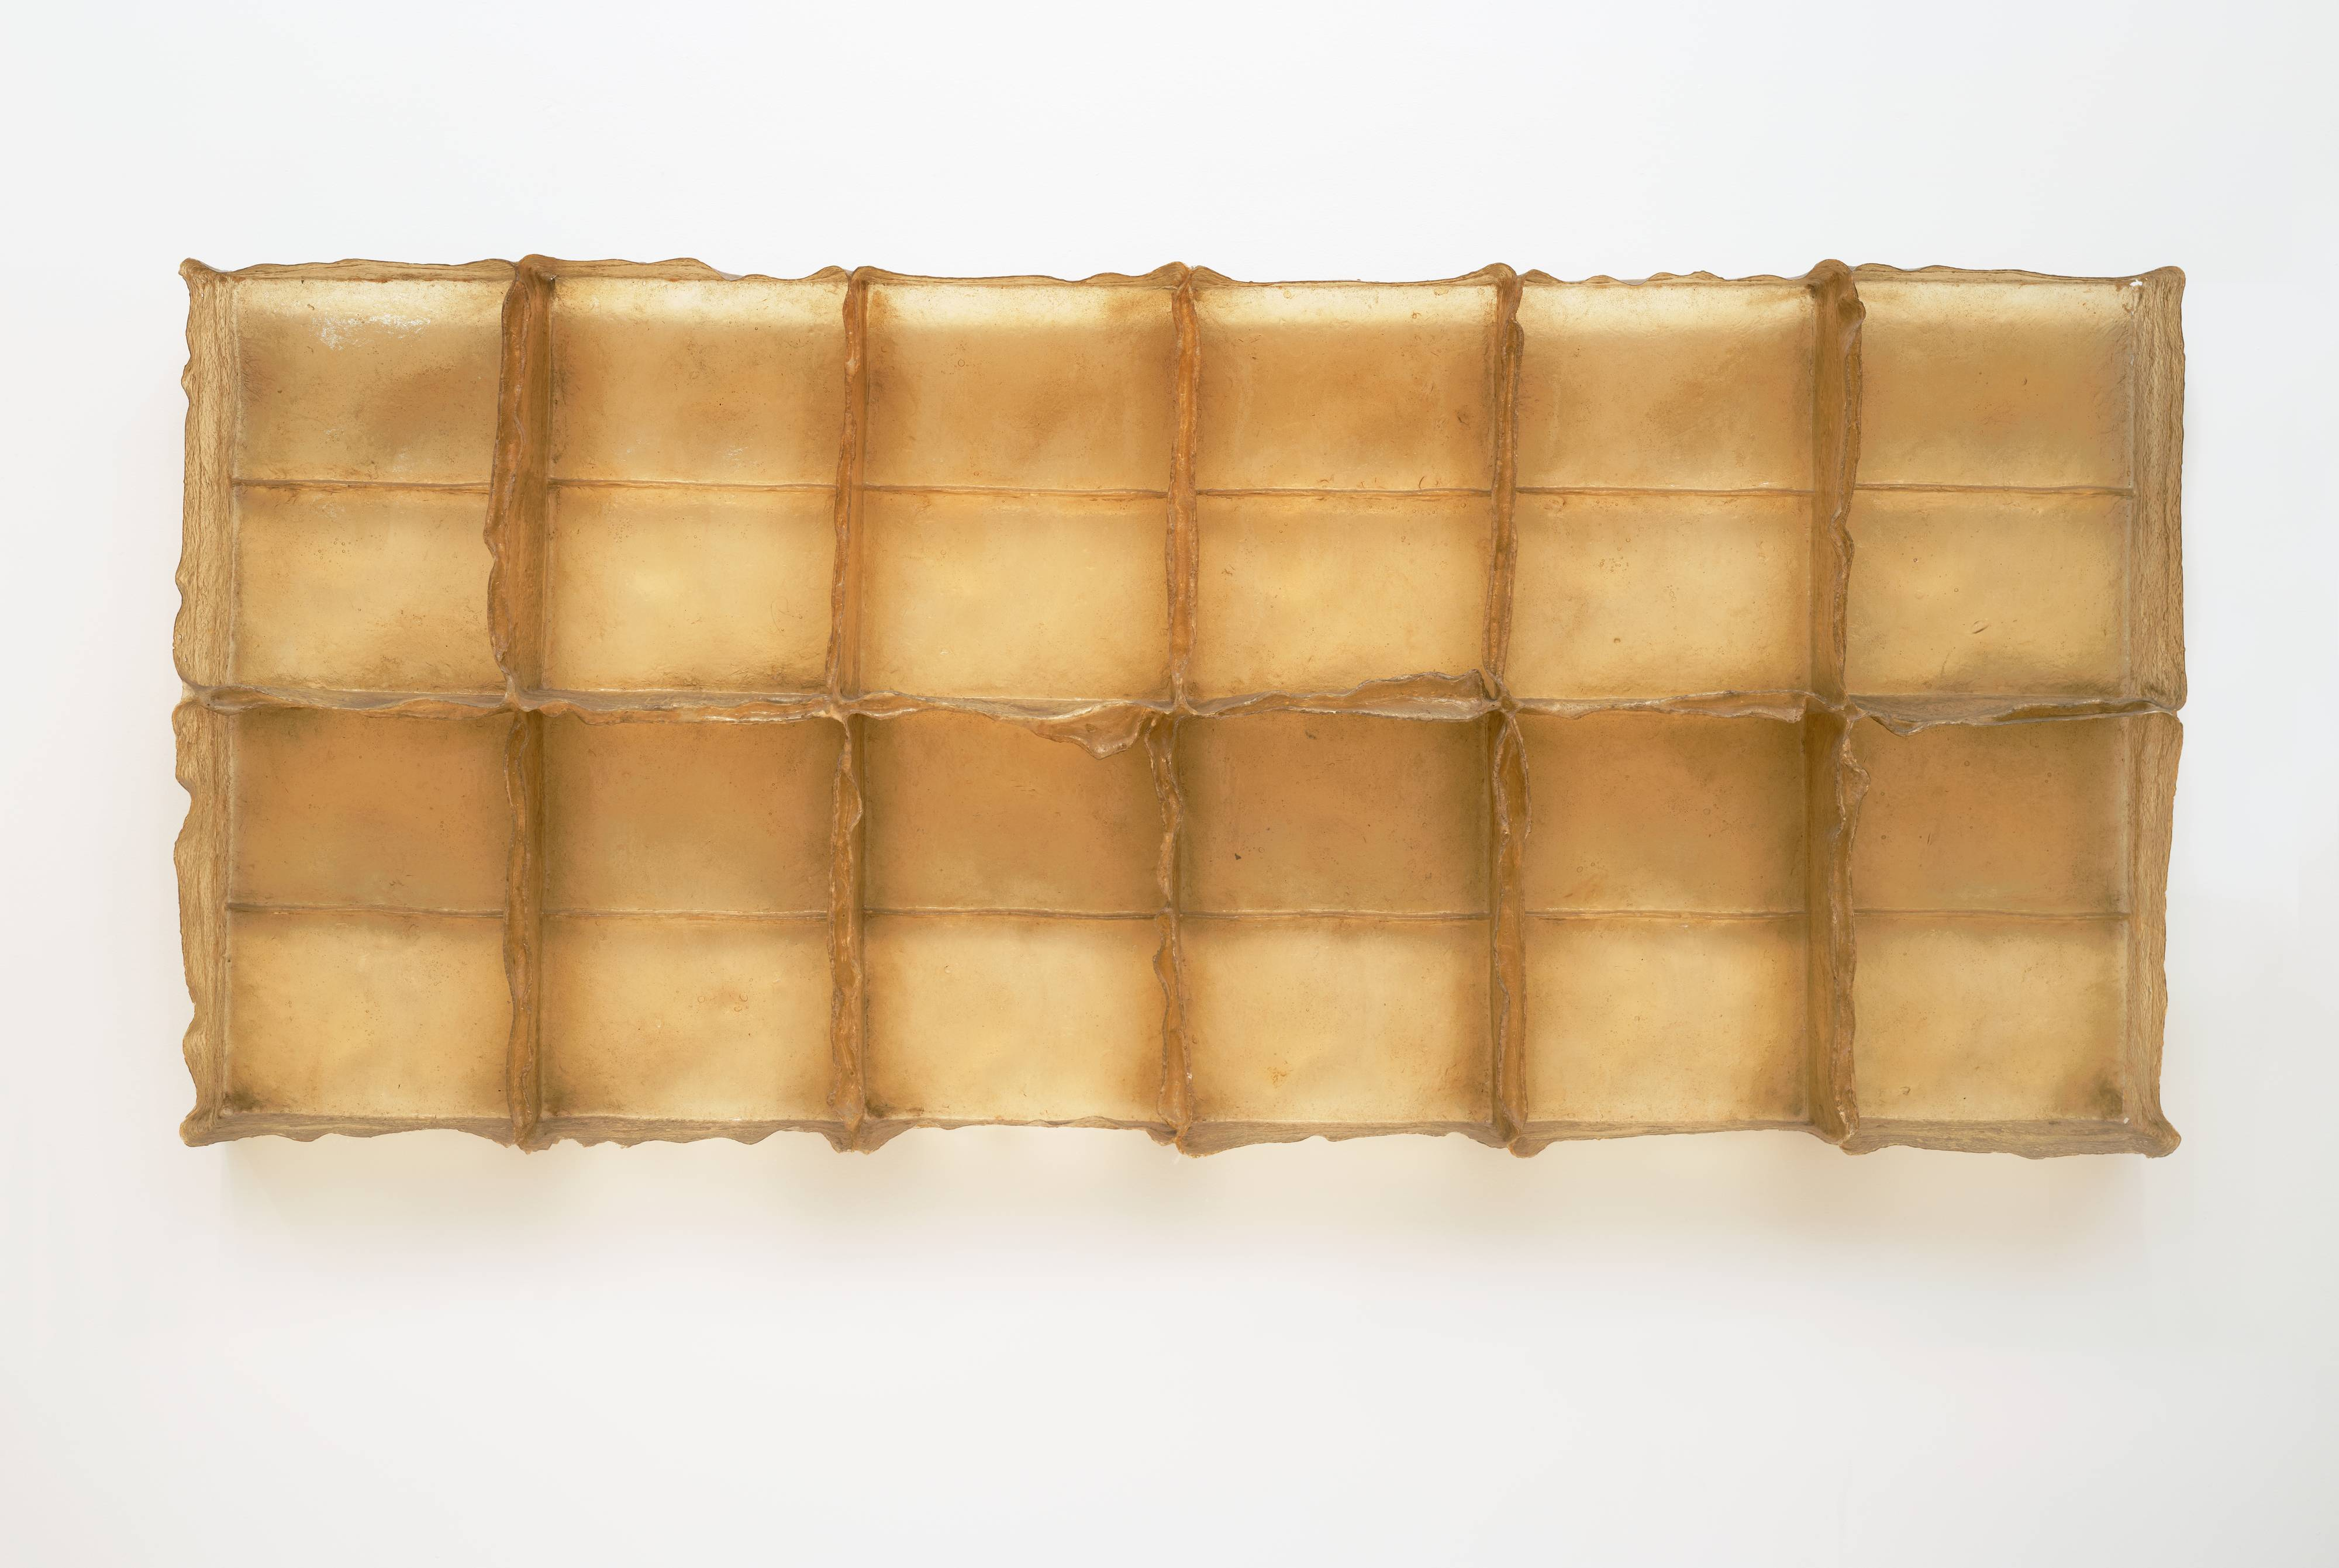 <p>This golden-yellow sculpture resembles a giant ice cube tray hanging horizontally on a wall, with the open, empty, rectangular niches facing us. The piece is more than three feet tall and over seven feet long with six niches on top and six on the bottom. Each individual compartment is divided in two by a thin horizontal line, giving the impression that there are, in fact, four rows of rectangles. The piece is constructed of fiberglass and polyester resin, giving it the look of golden honeycomb. The edges of the open boxes are imperfect and ragged, like peeling skin, in contrast to the structure itself, which is precise and orderly.</p>